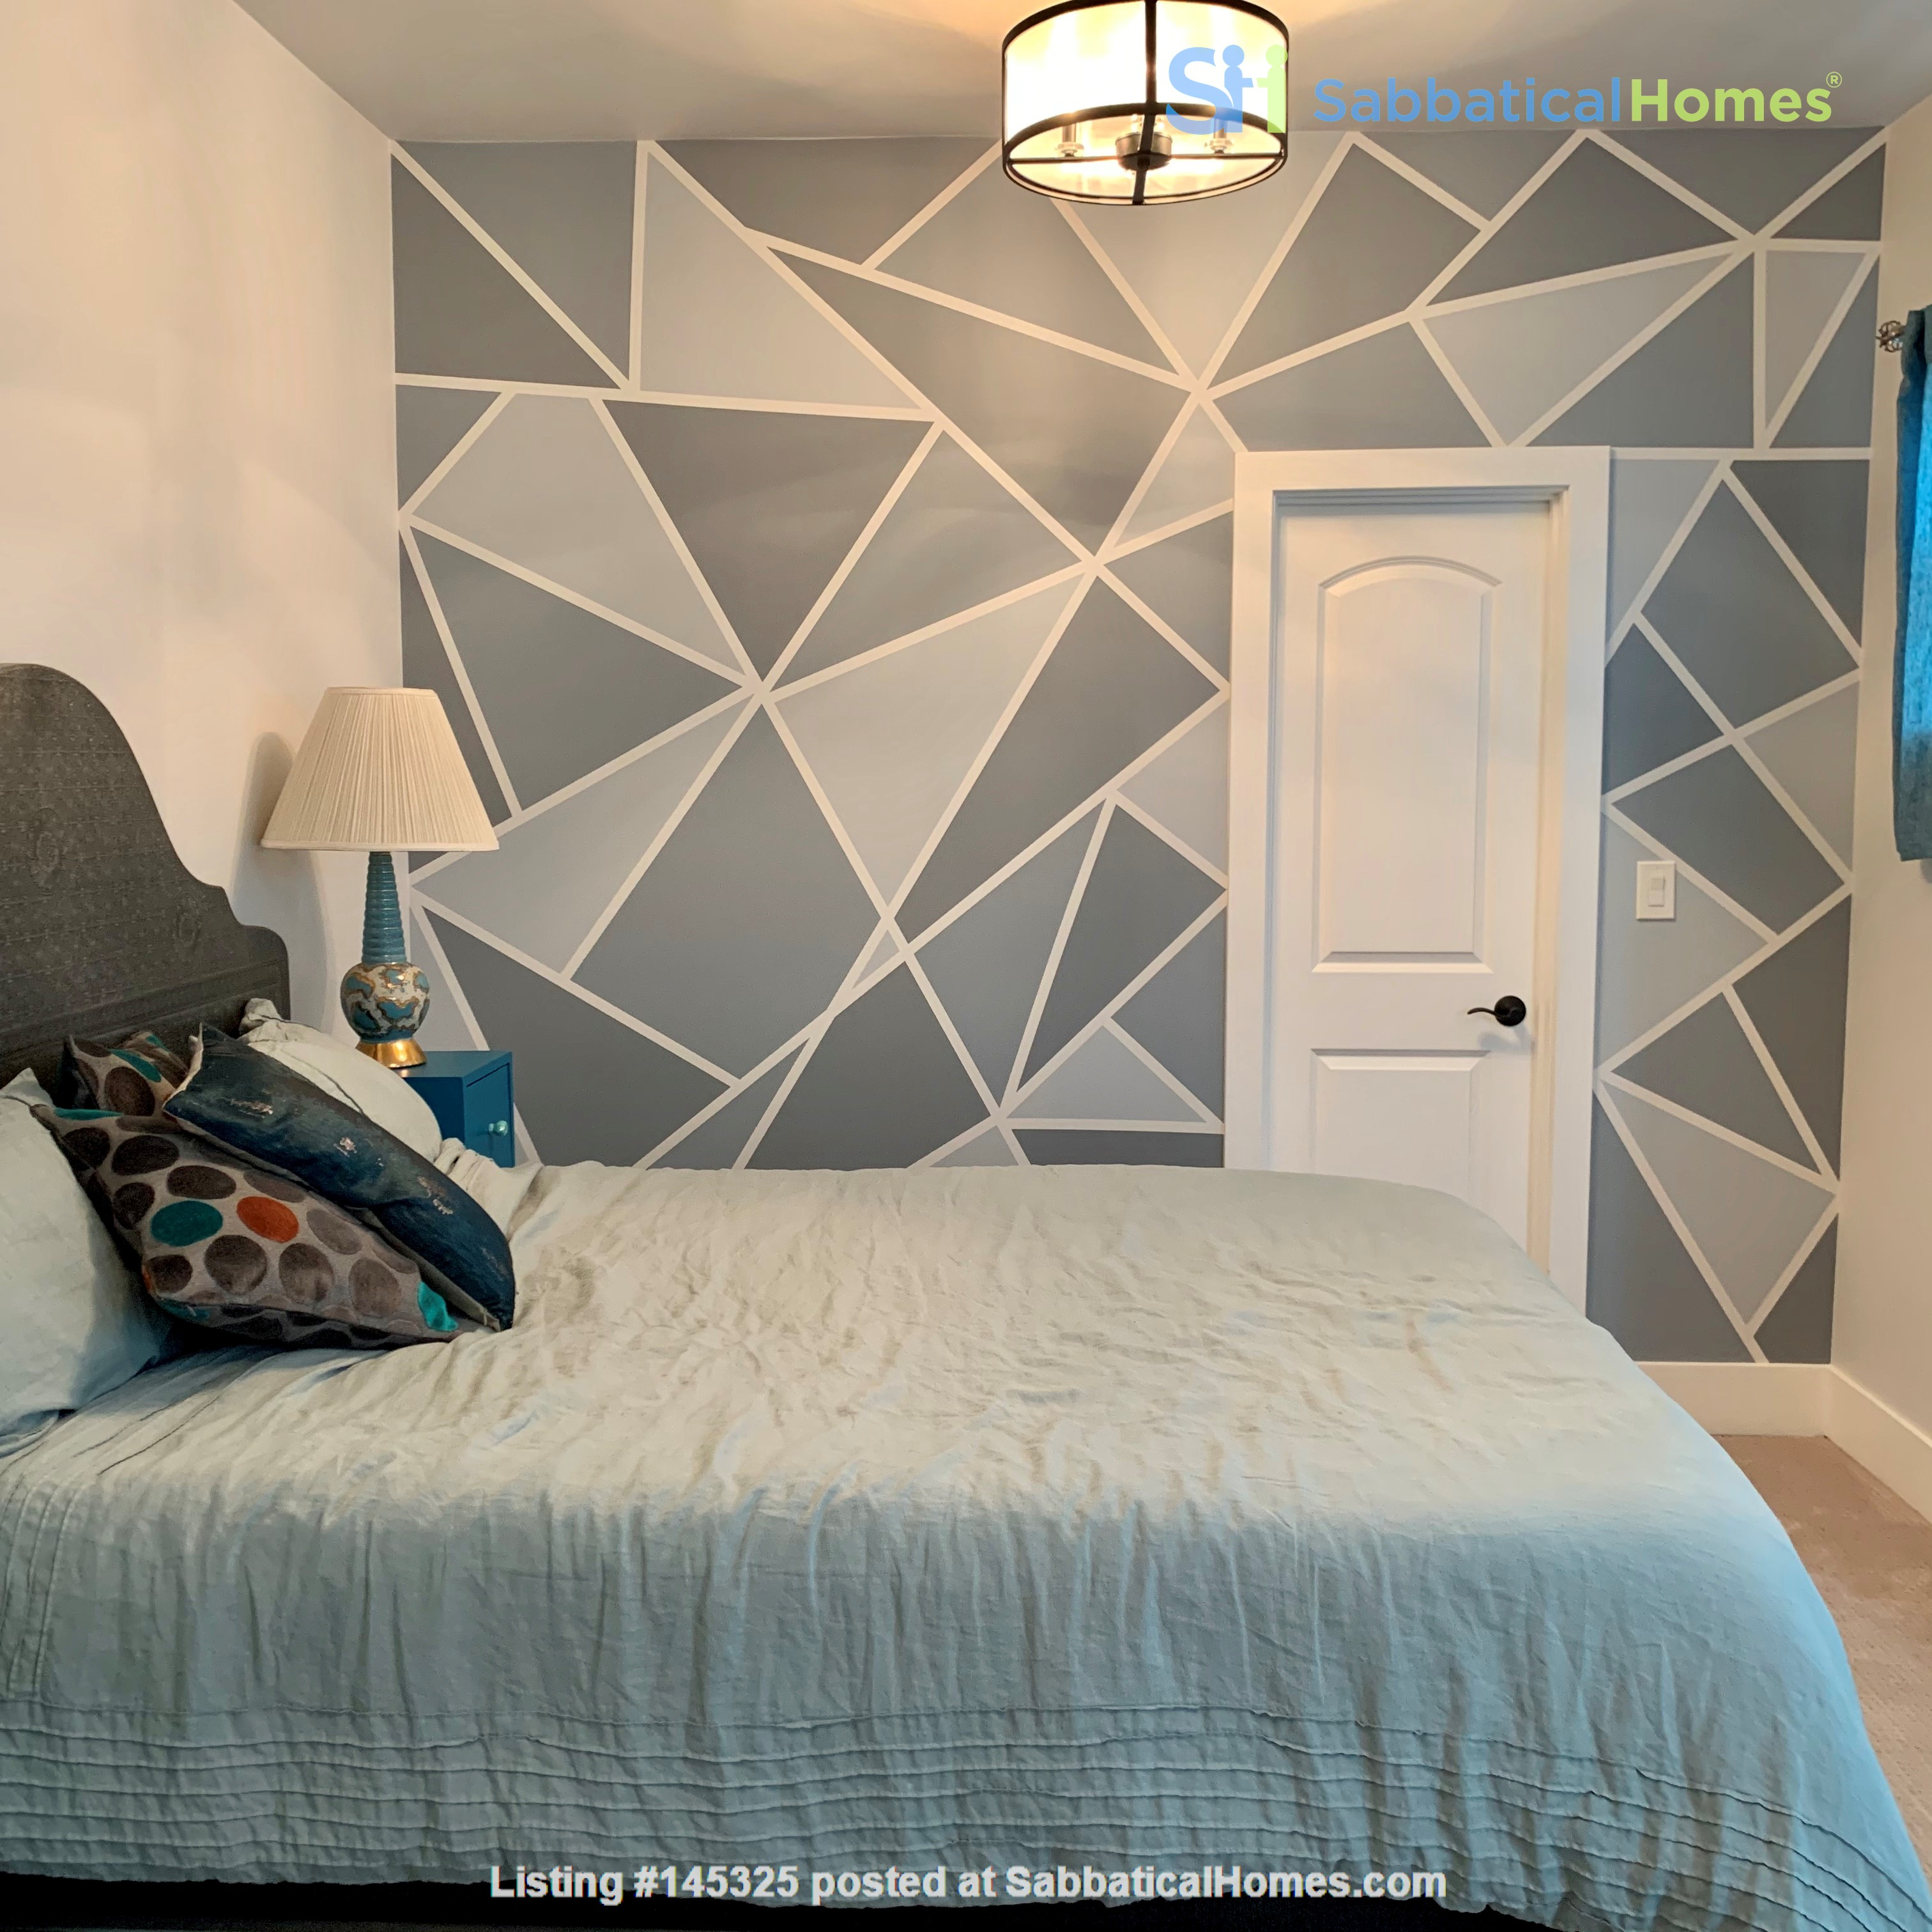 Design-Haven 4 bedroom House Home Exchange in Oakland, California, United States 6